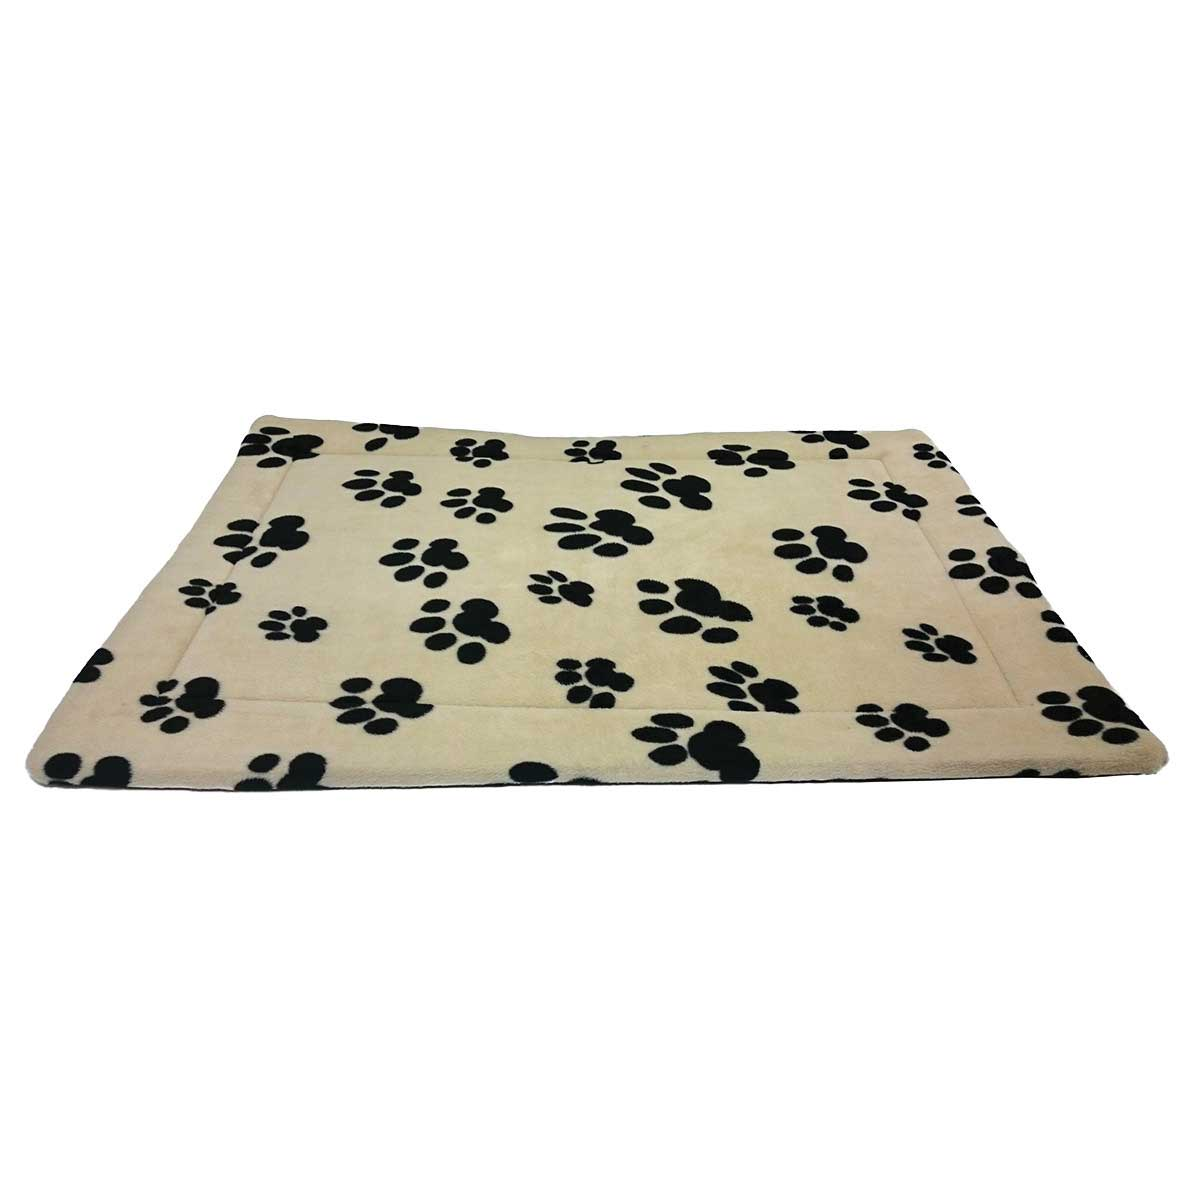 51 inch by 33 inch Taupe Tan Thermo Pet Mat with Black Paw Print Design